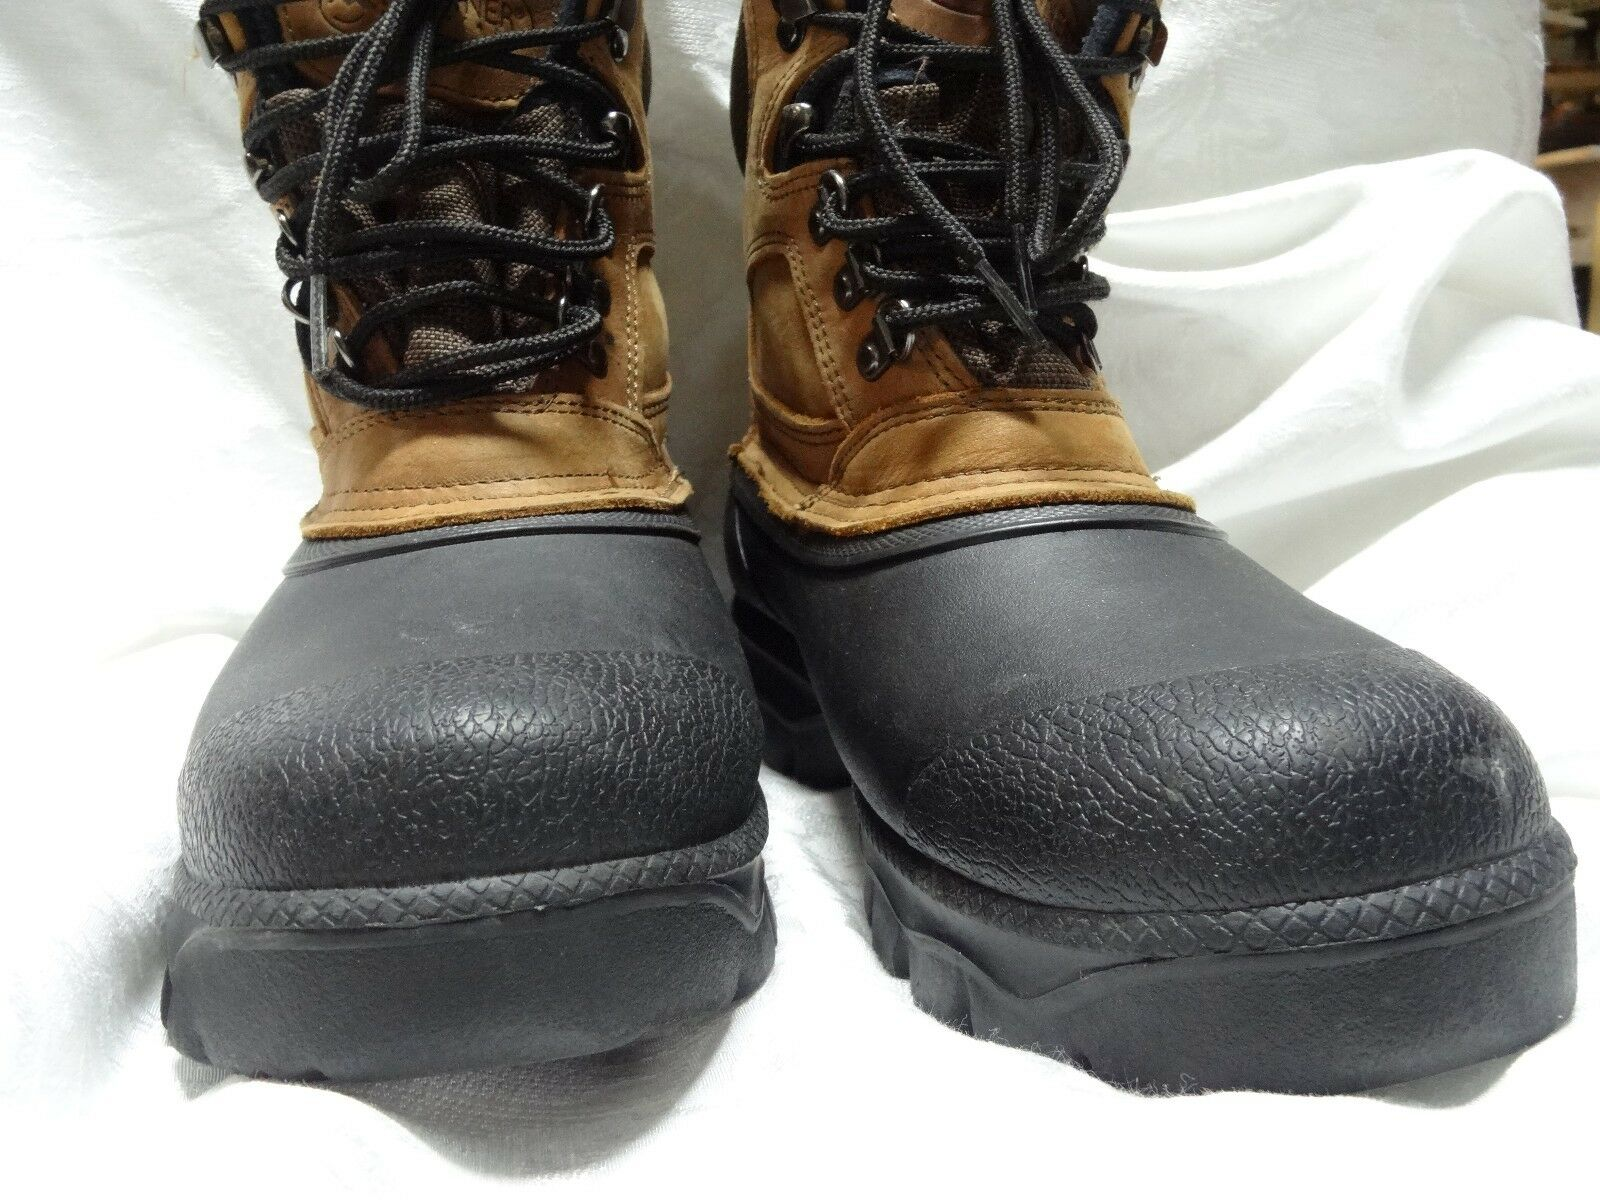 Donner Mountain Leather/Rubber Insulated Boots, Men's 11M